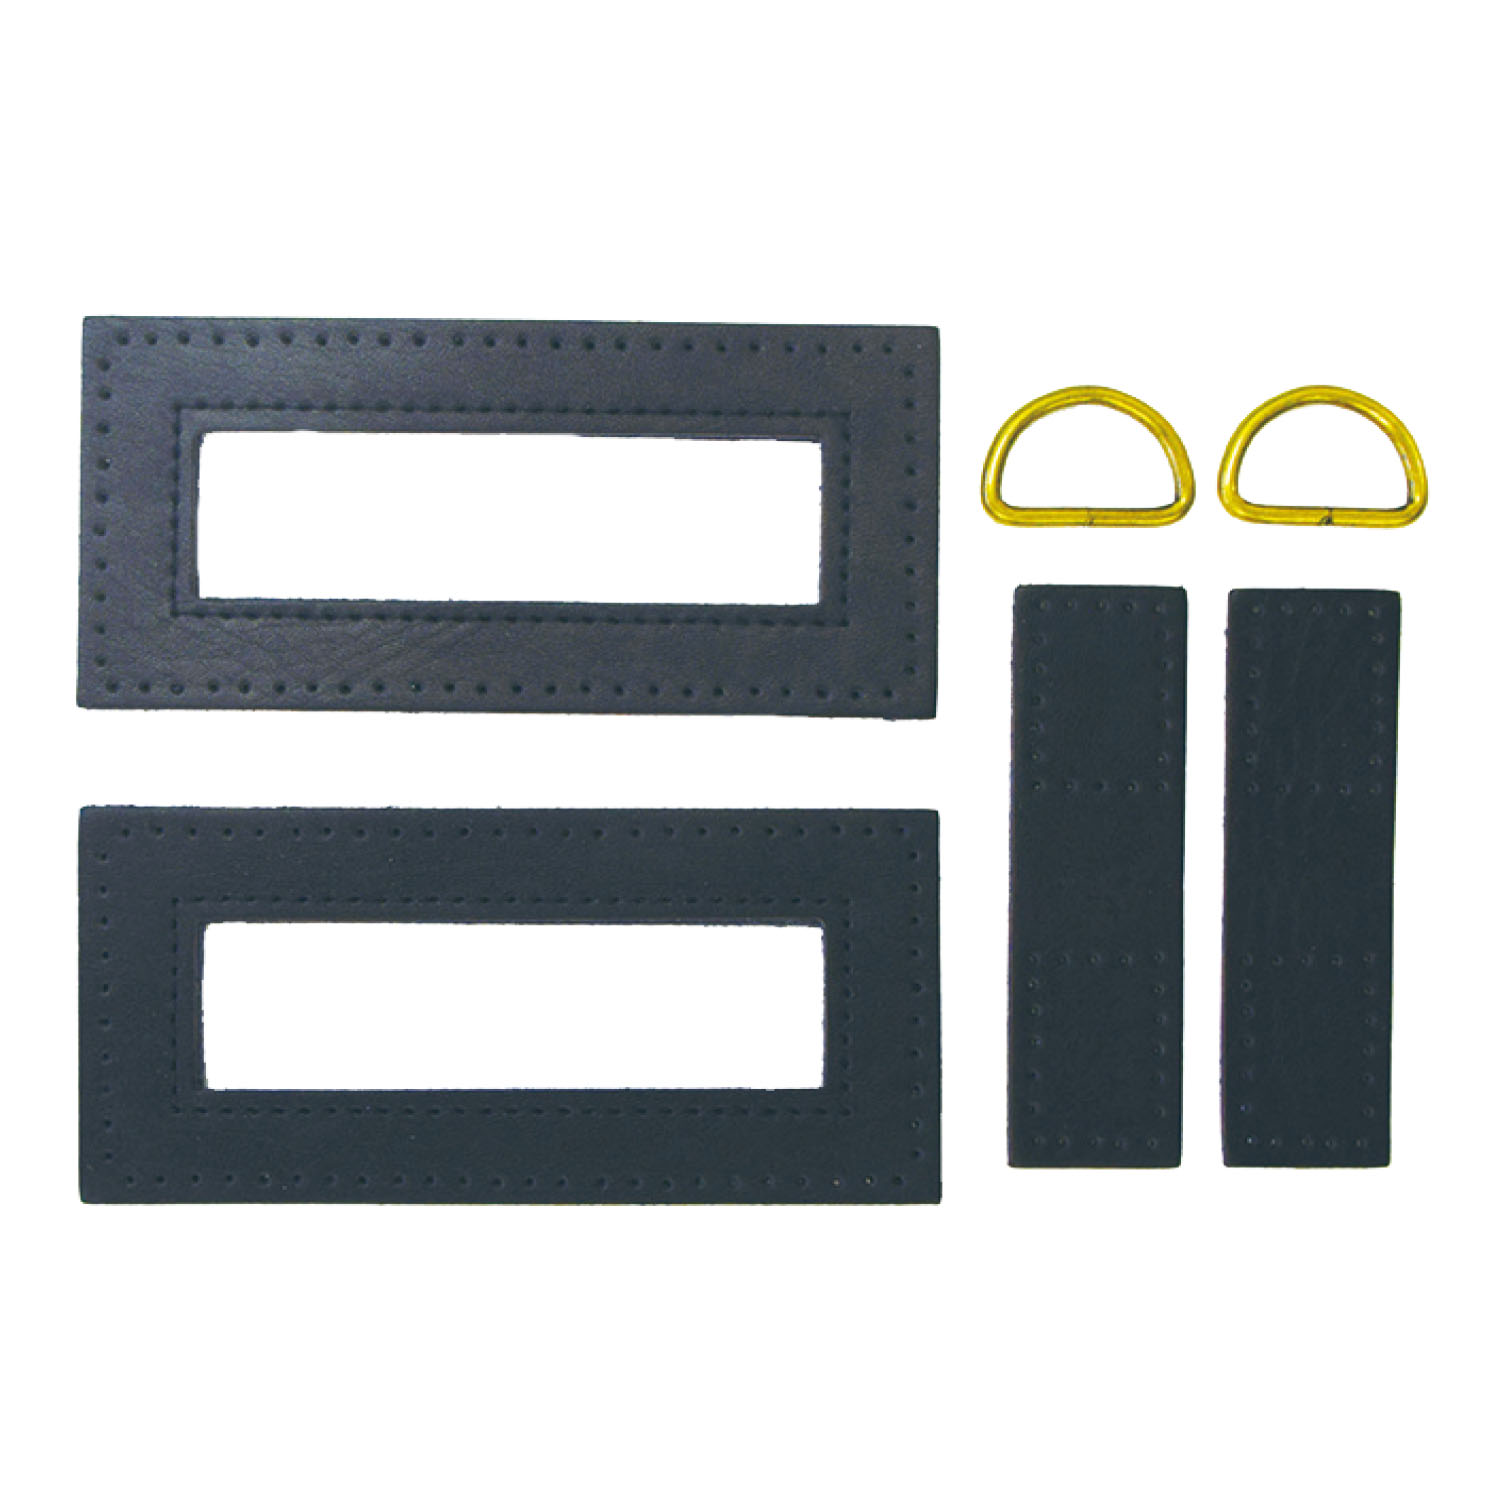 cluch_handle_set_square_bk.jpg